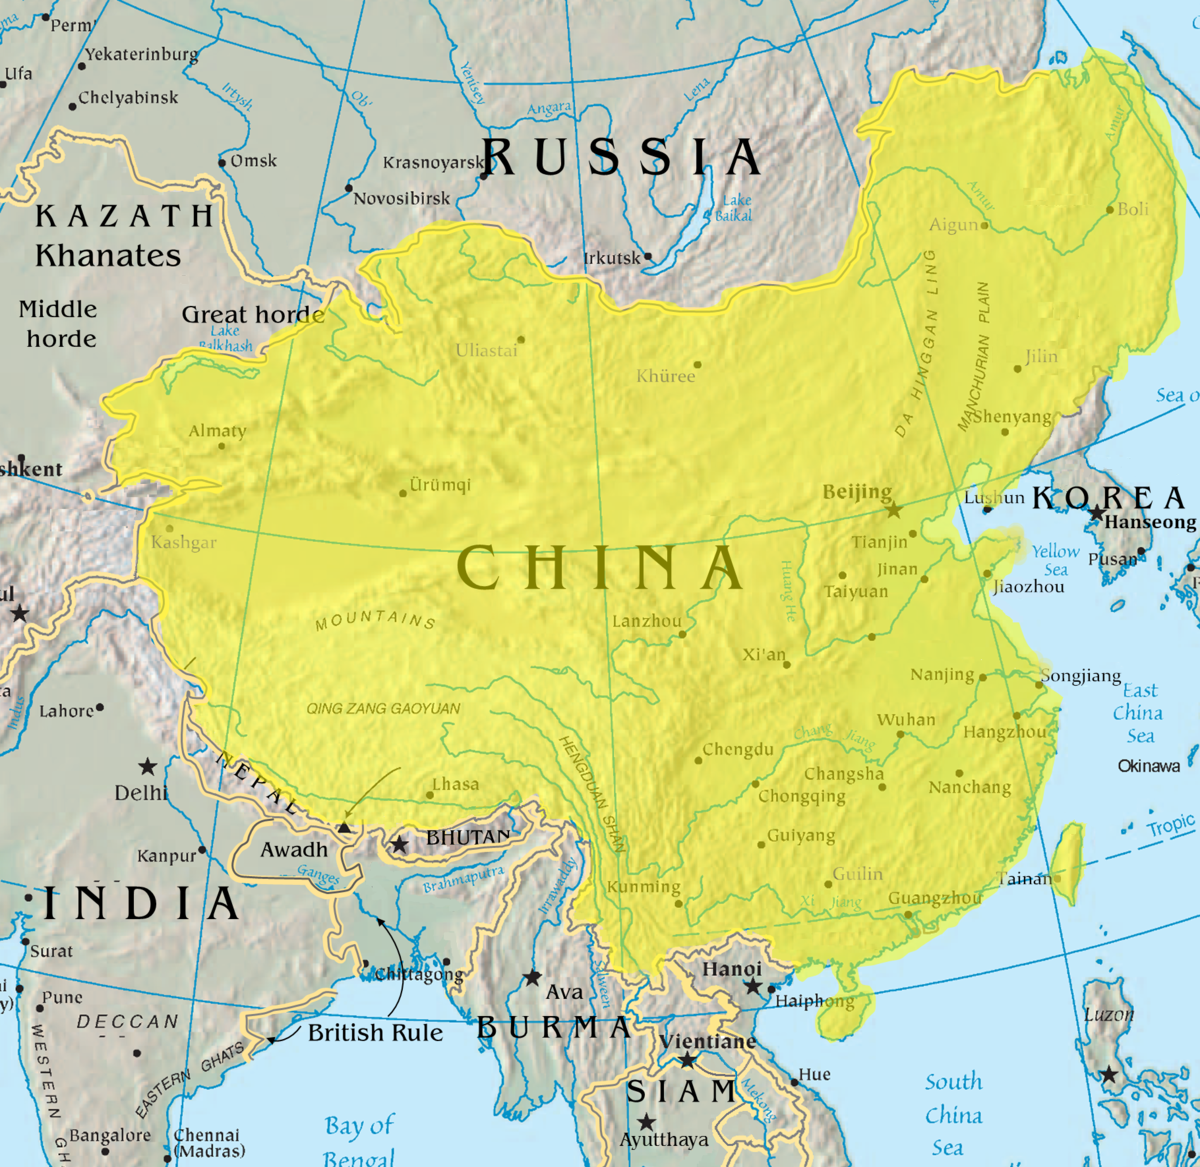 the qing dynasty The qing dynasty was the final imperial dynasty in china, lasting from 1644 to 1912 it was an era noted for its initial prosperity and tumultuous final years, and for being only the second time .